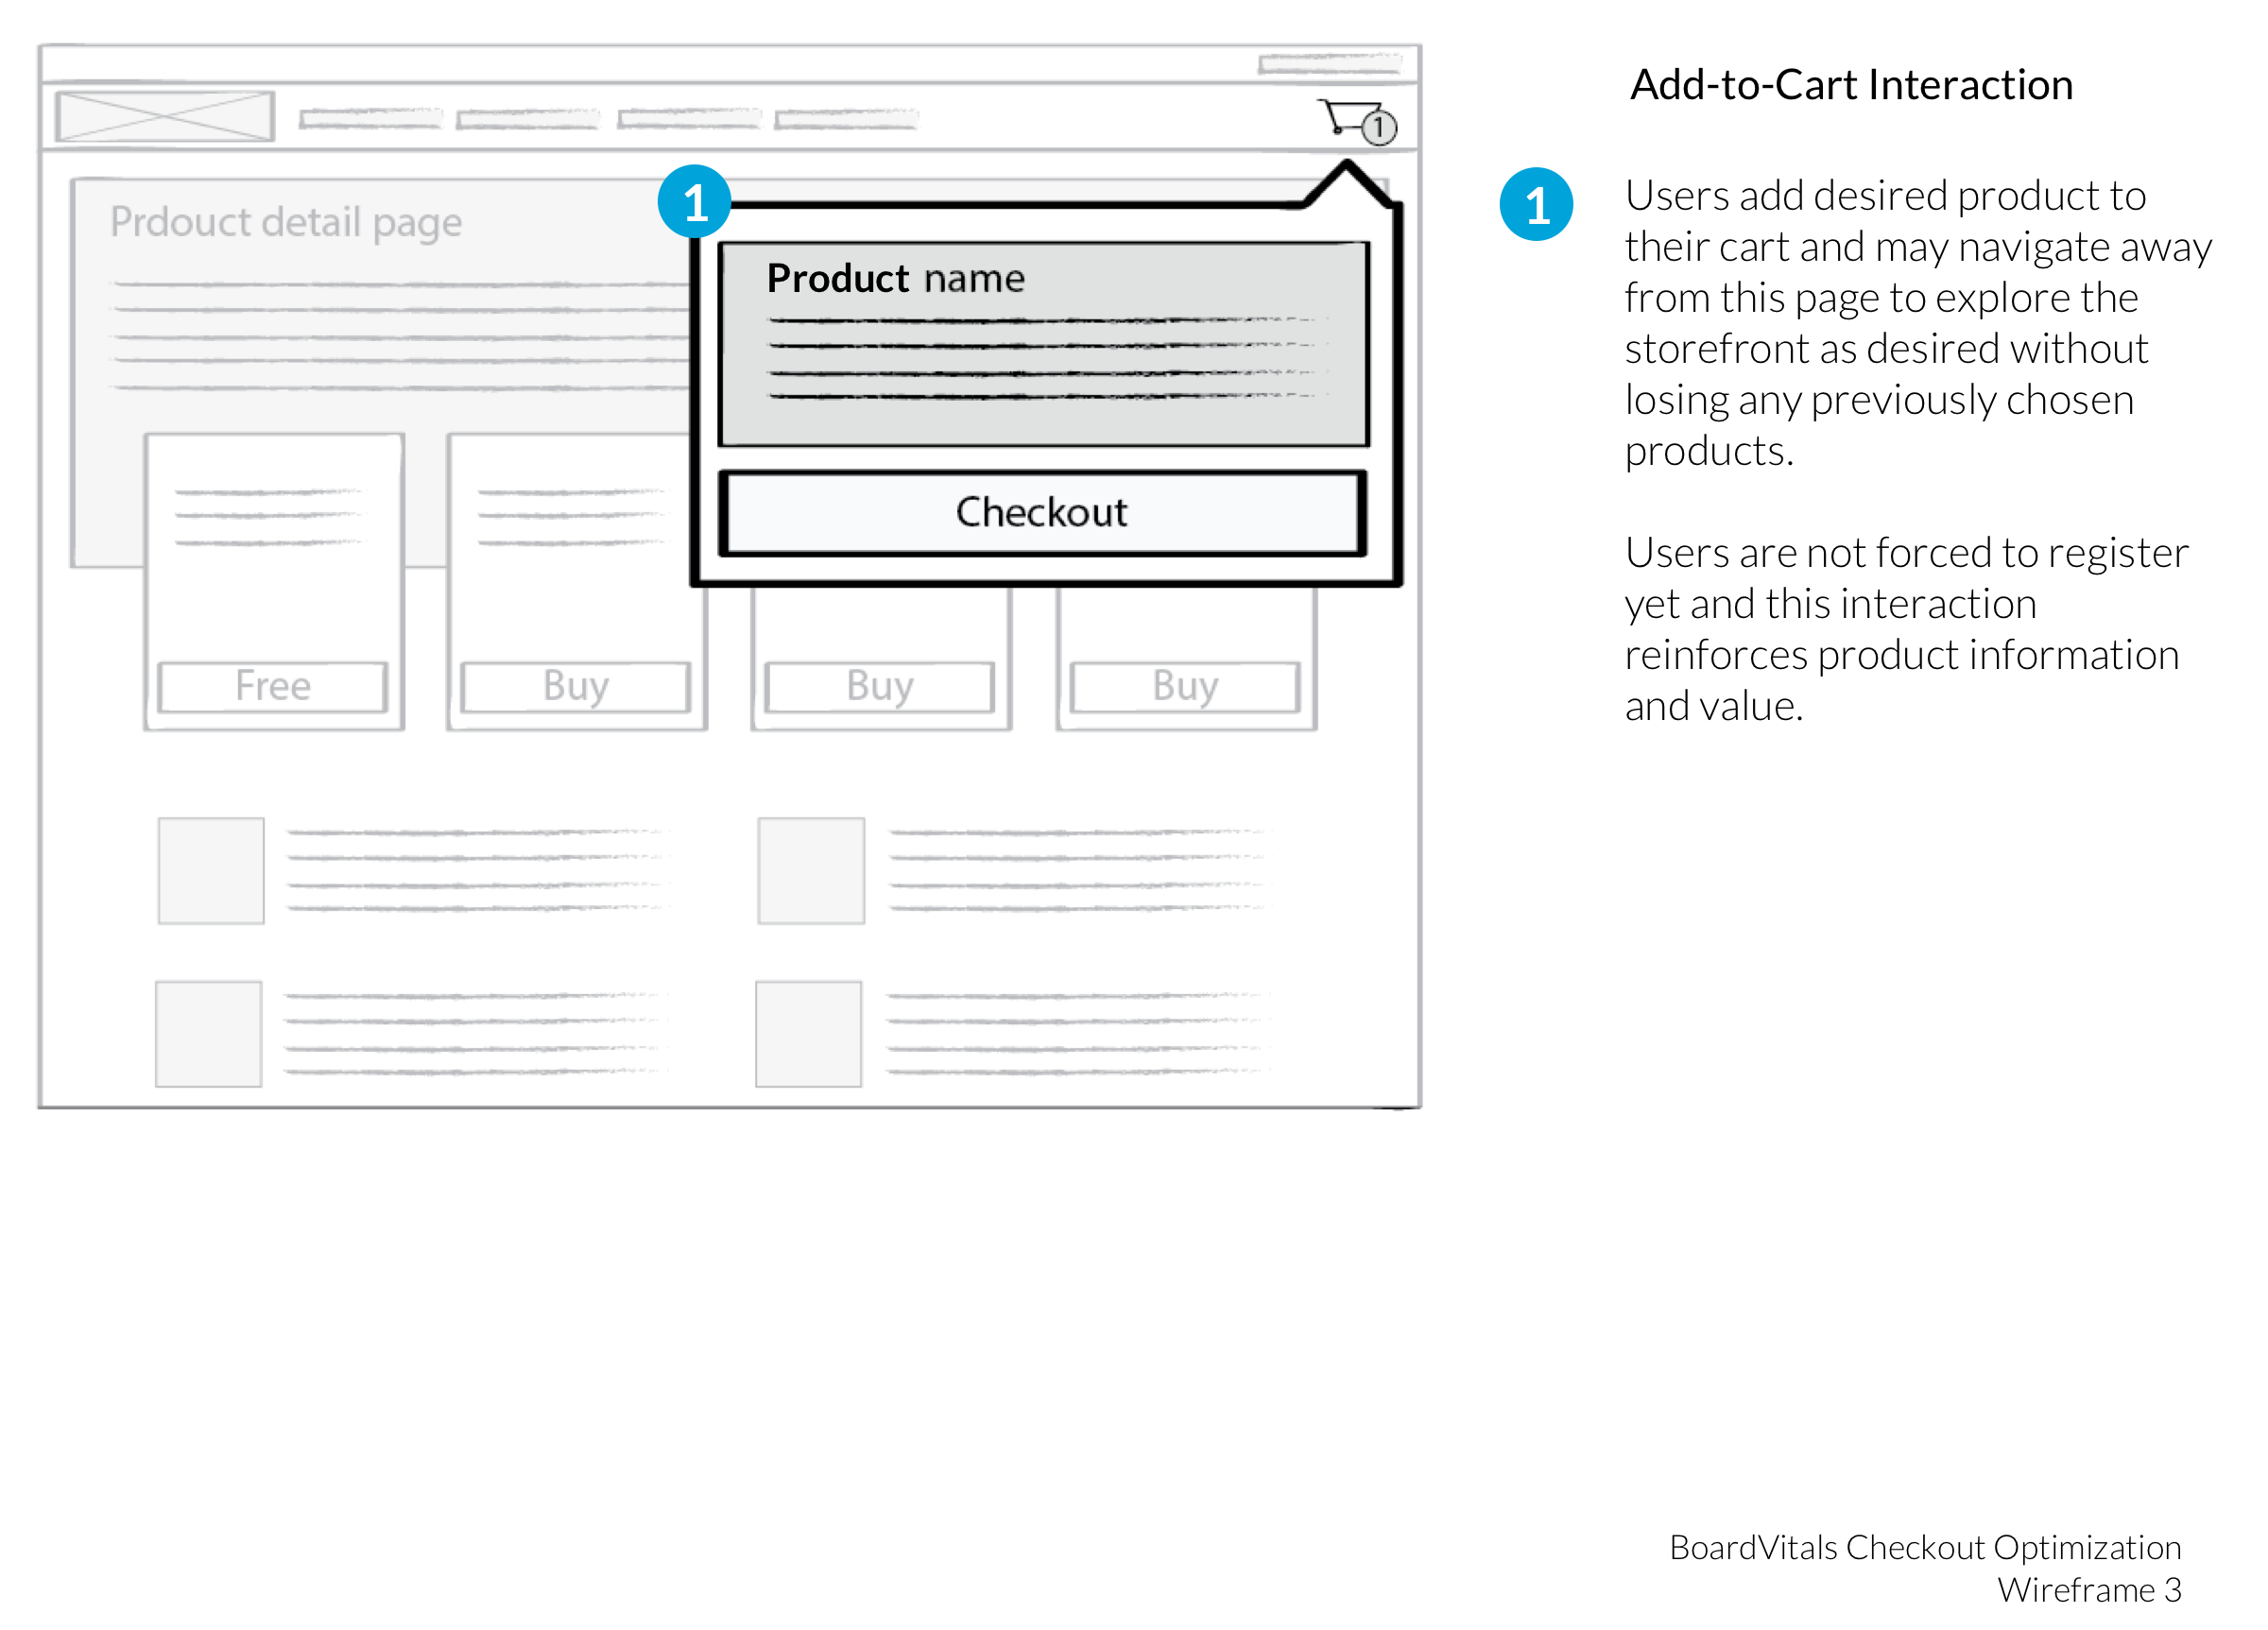 BV checkout optimization_wireframe_flows Copy 2.png